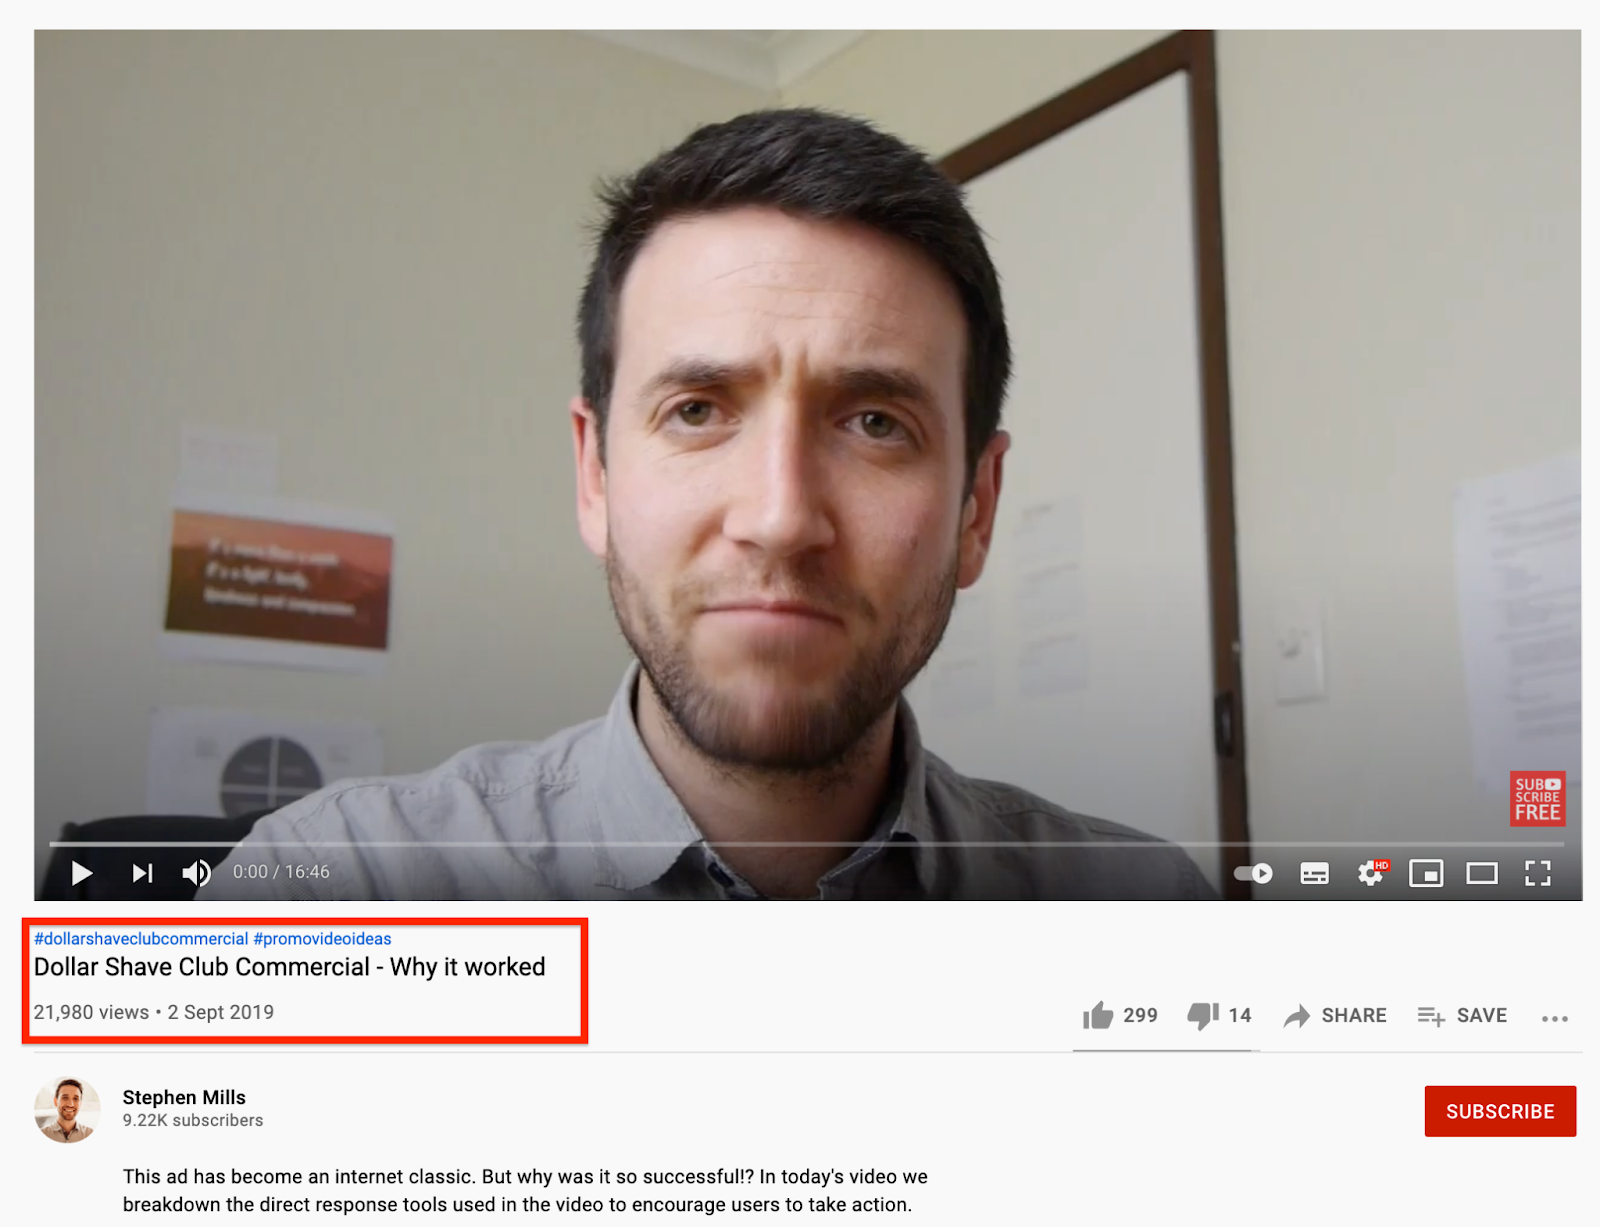 Dollar Shave Club commercial analysis